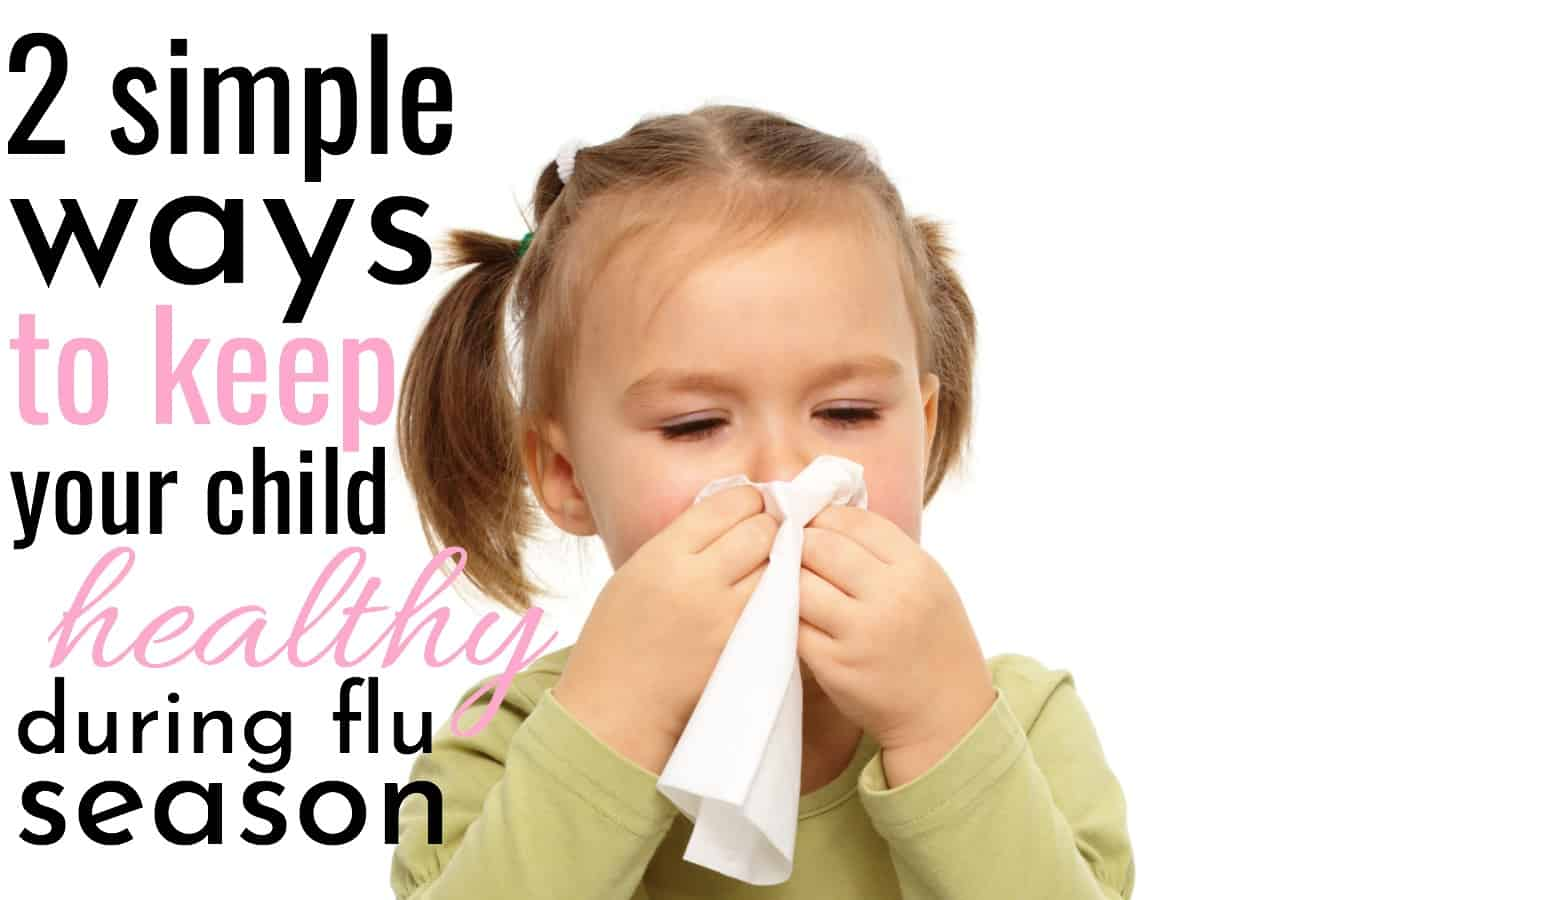 little girl blowing her nose after not keeping healthy during flu season